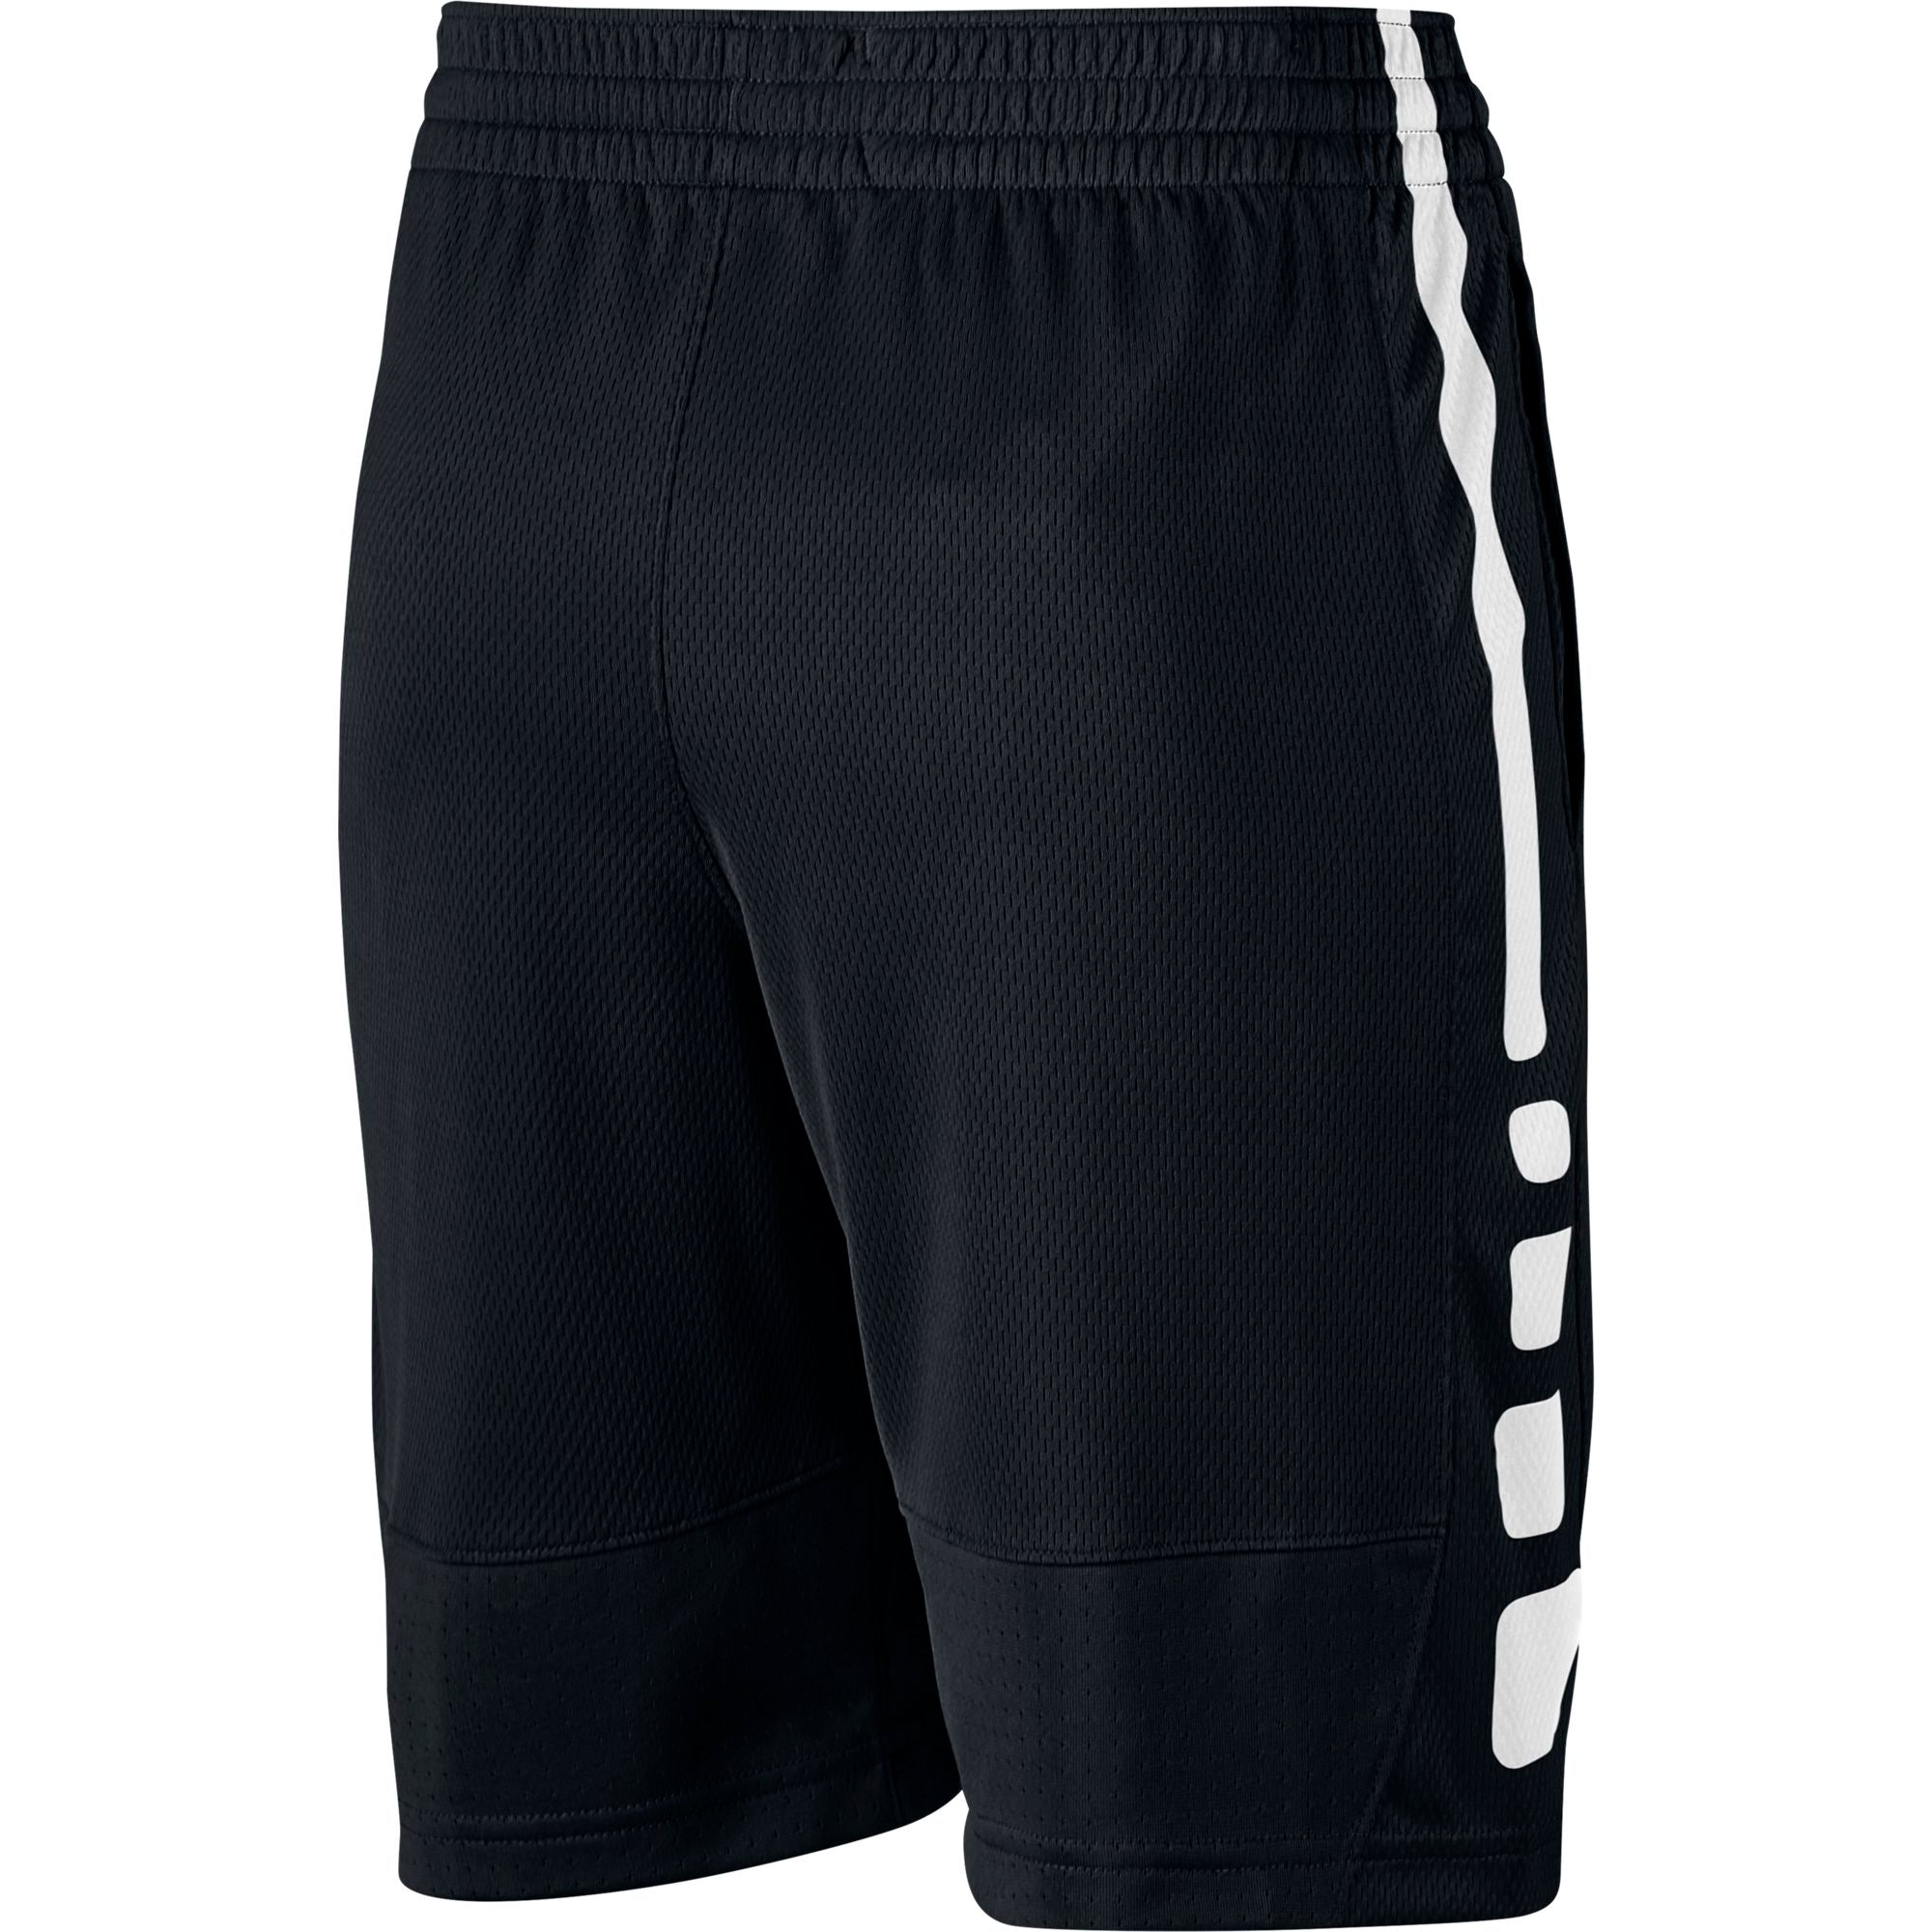 Nike Kids Basketball Dry Elite Shorts - Black/White